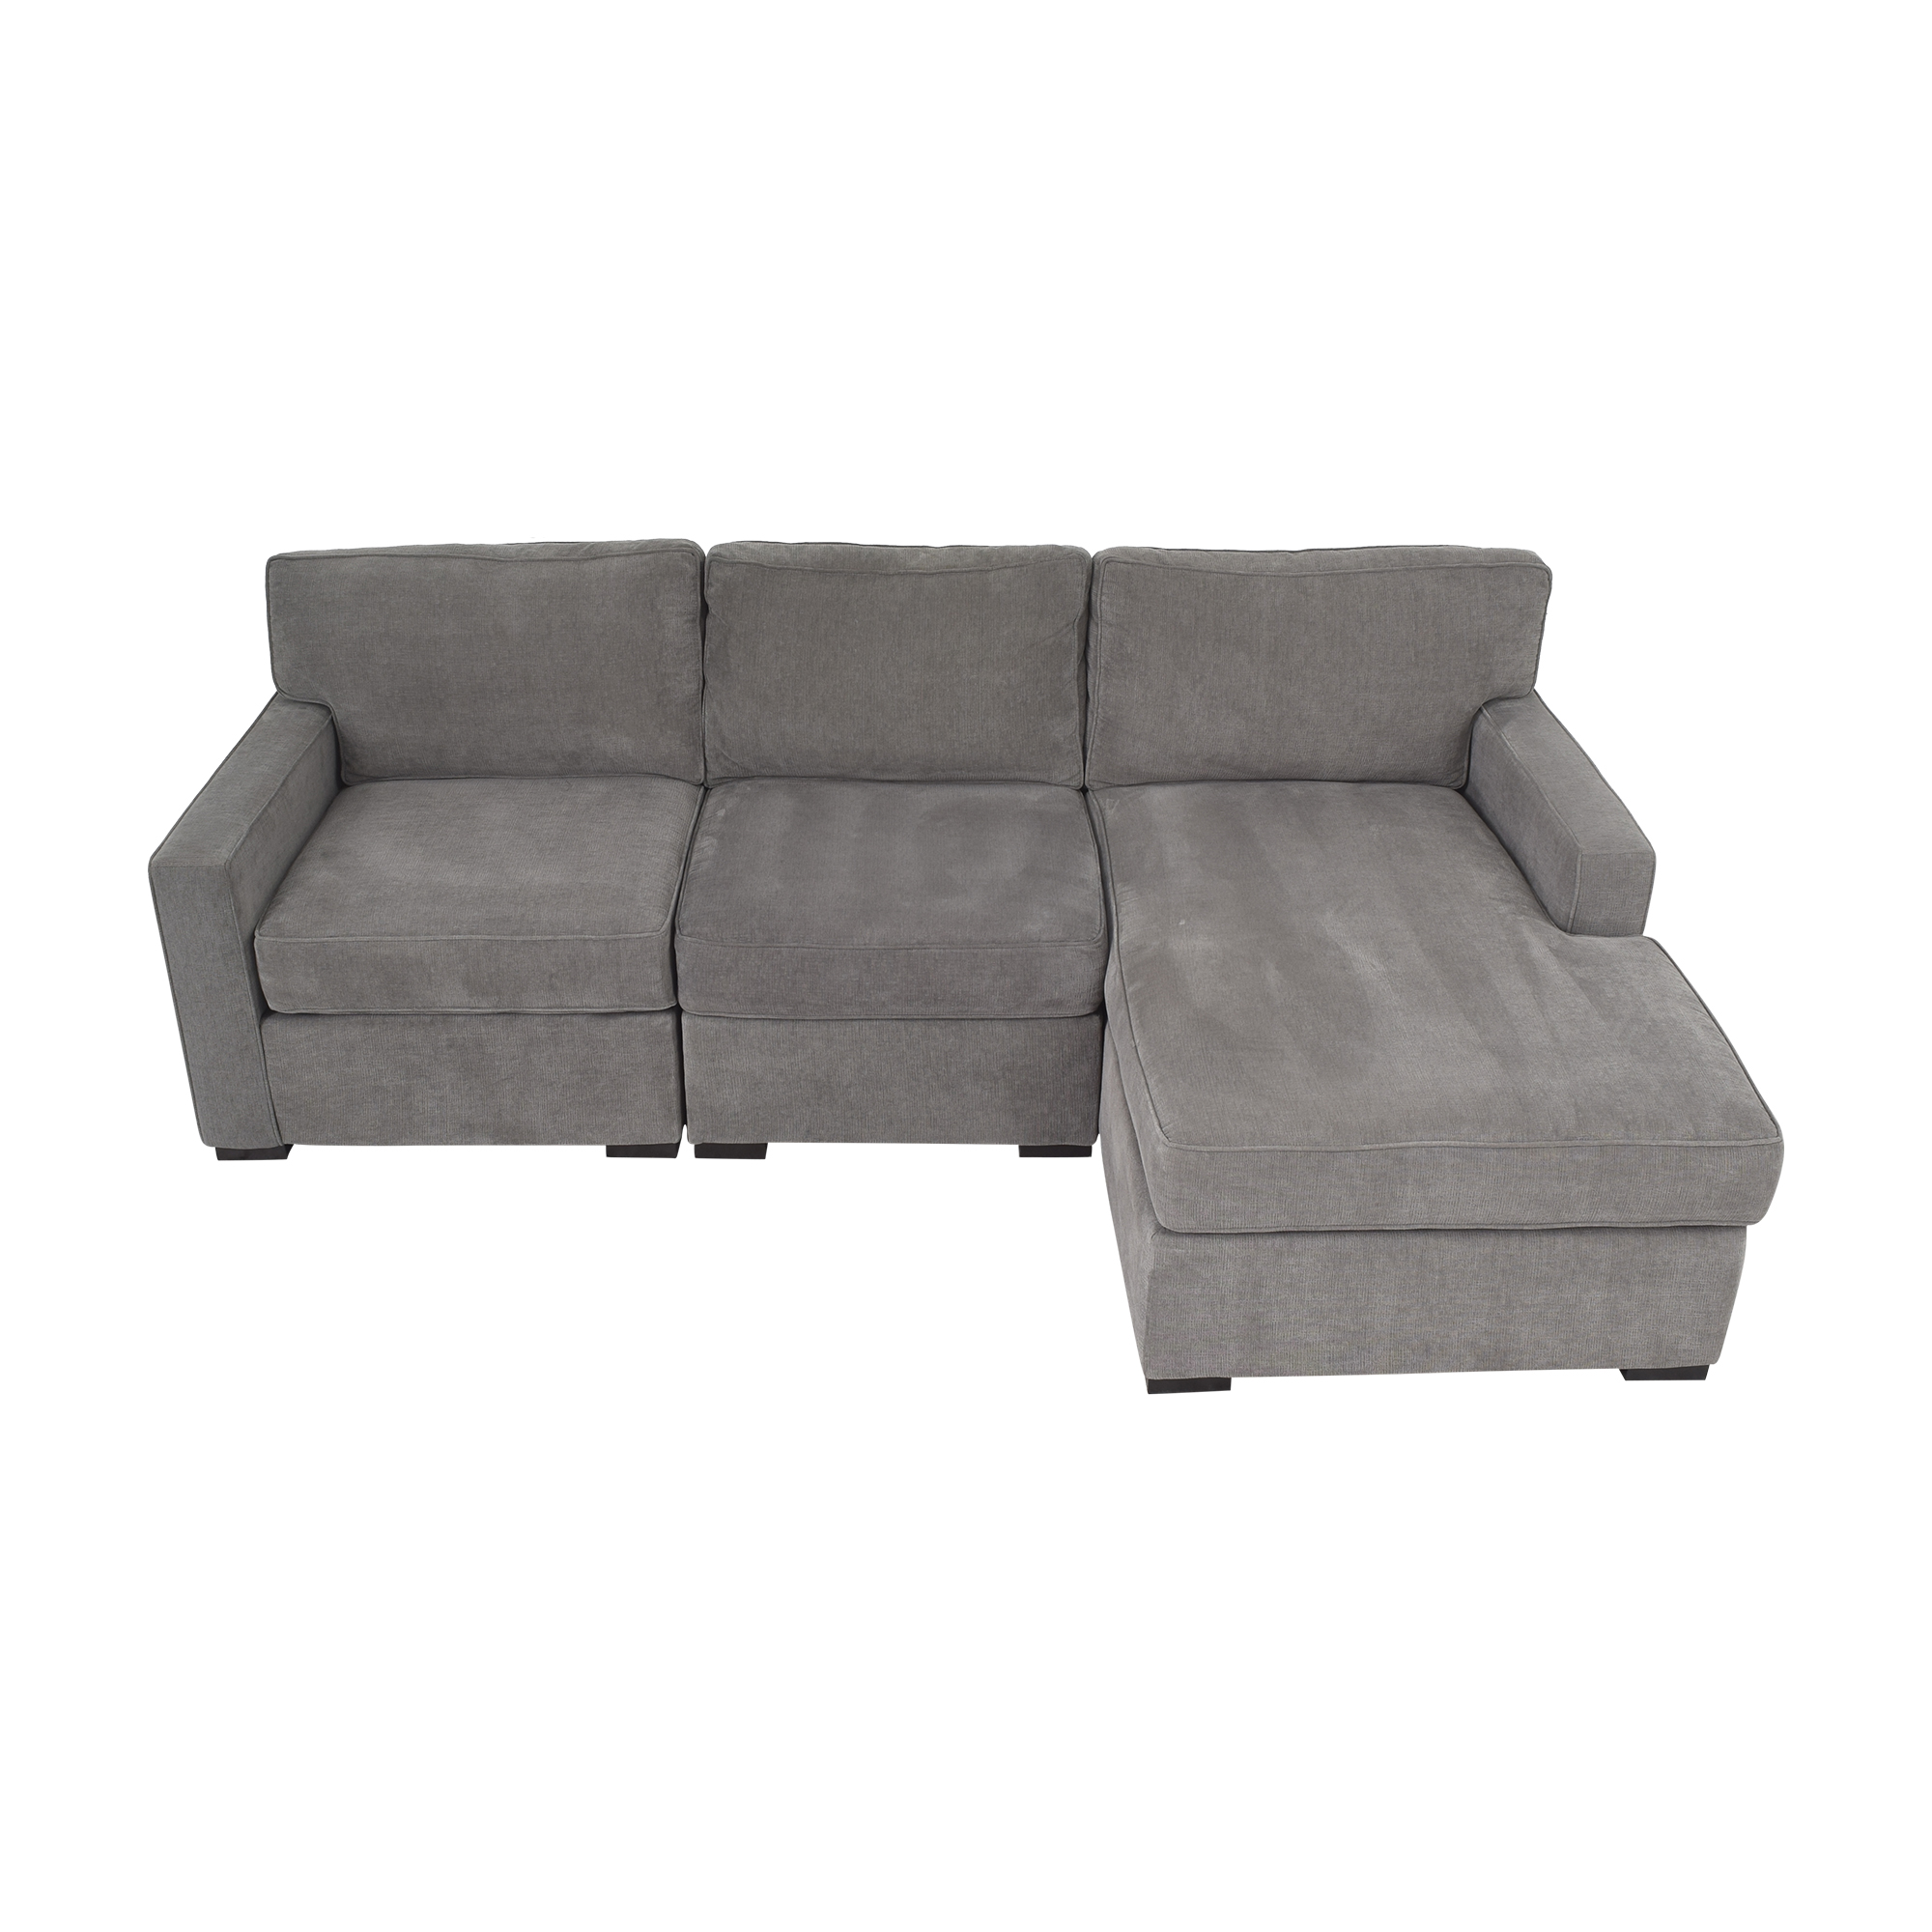 shop Macy's Radley Three Piece Chaise Sectional Sofa Macy's Sectionals